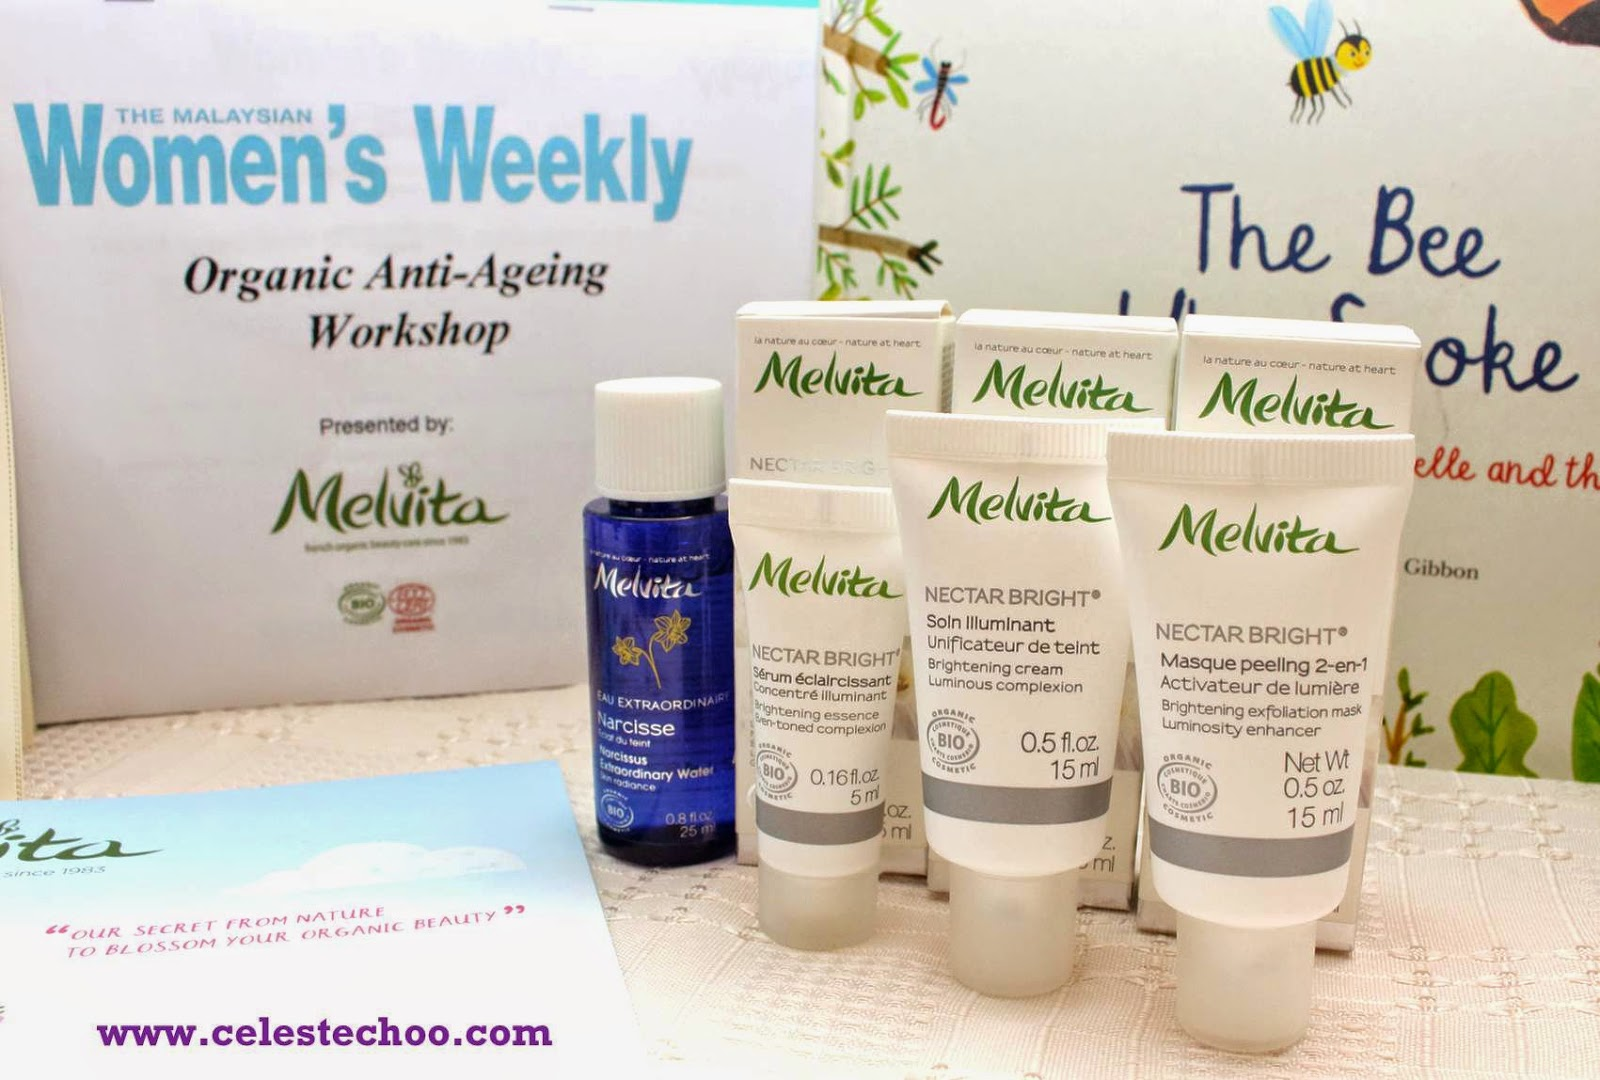 melvita-anti-aging-beauty-skincare-free-items-goodie-bag